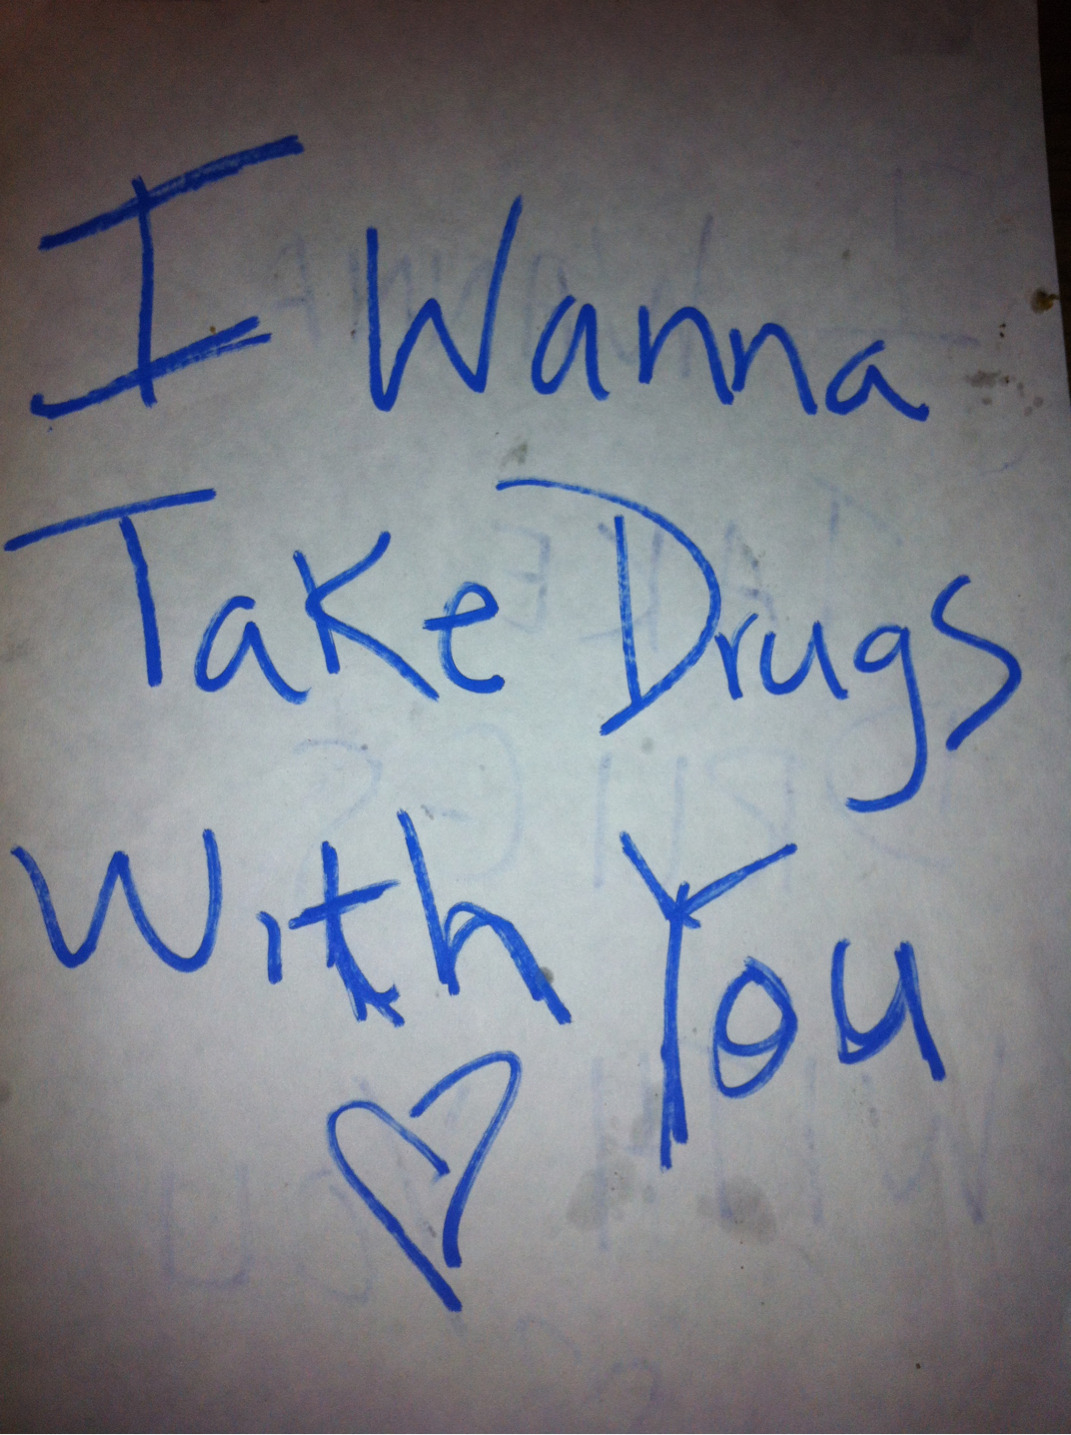 I wanna take drugs and do you.